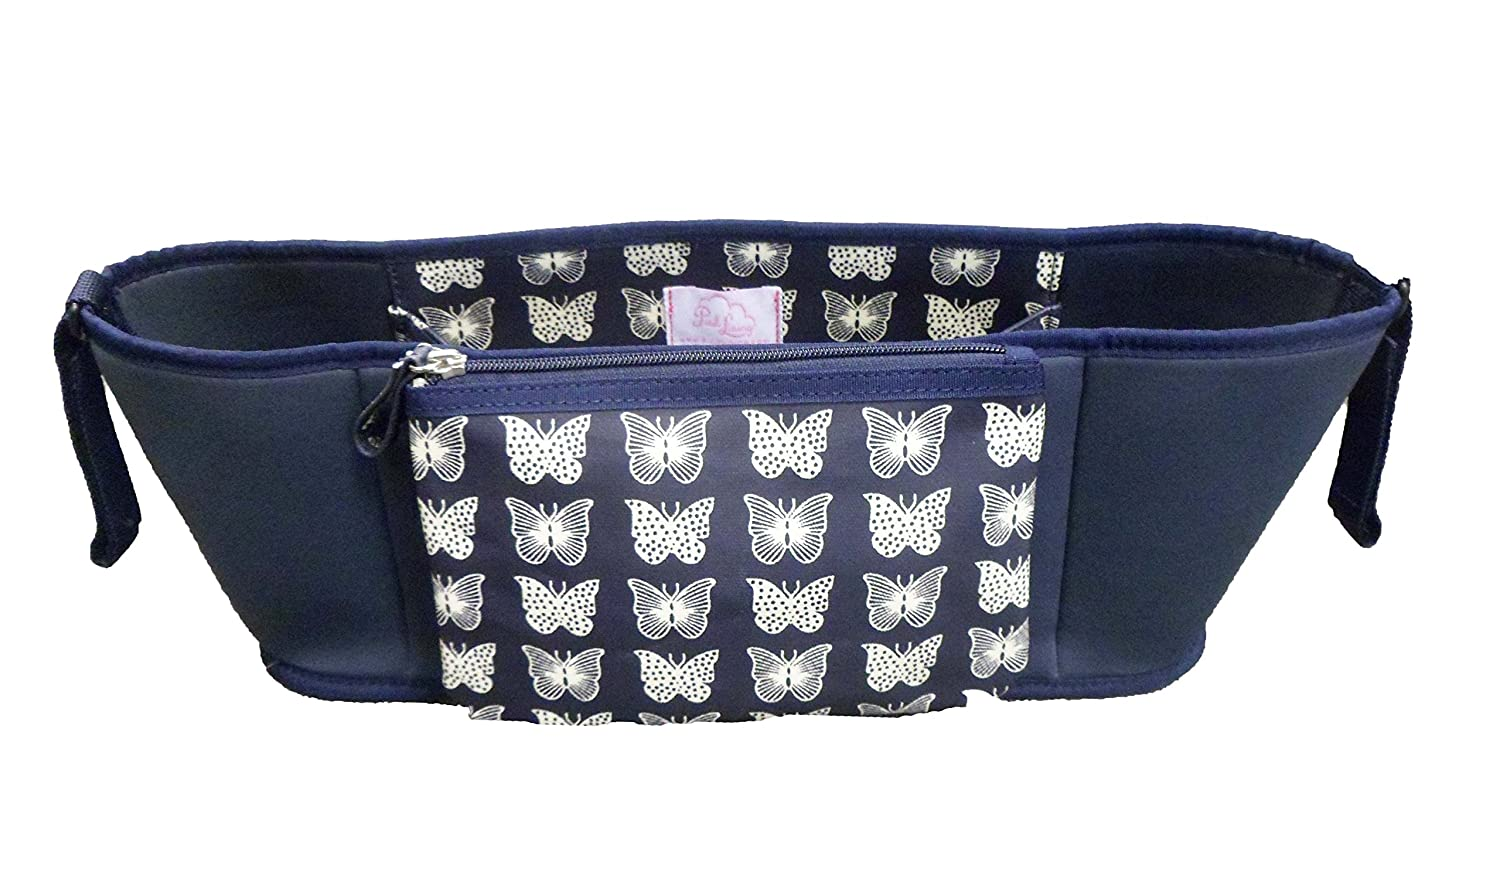 Pink Lining Pram/Stroller Buggy Organiser Bag- Butterflies On Navy Includes Velcro Straps And A Detachable Purse Section